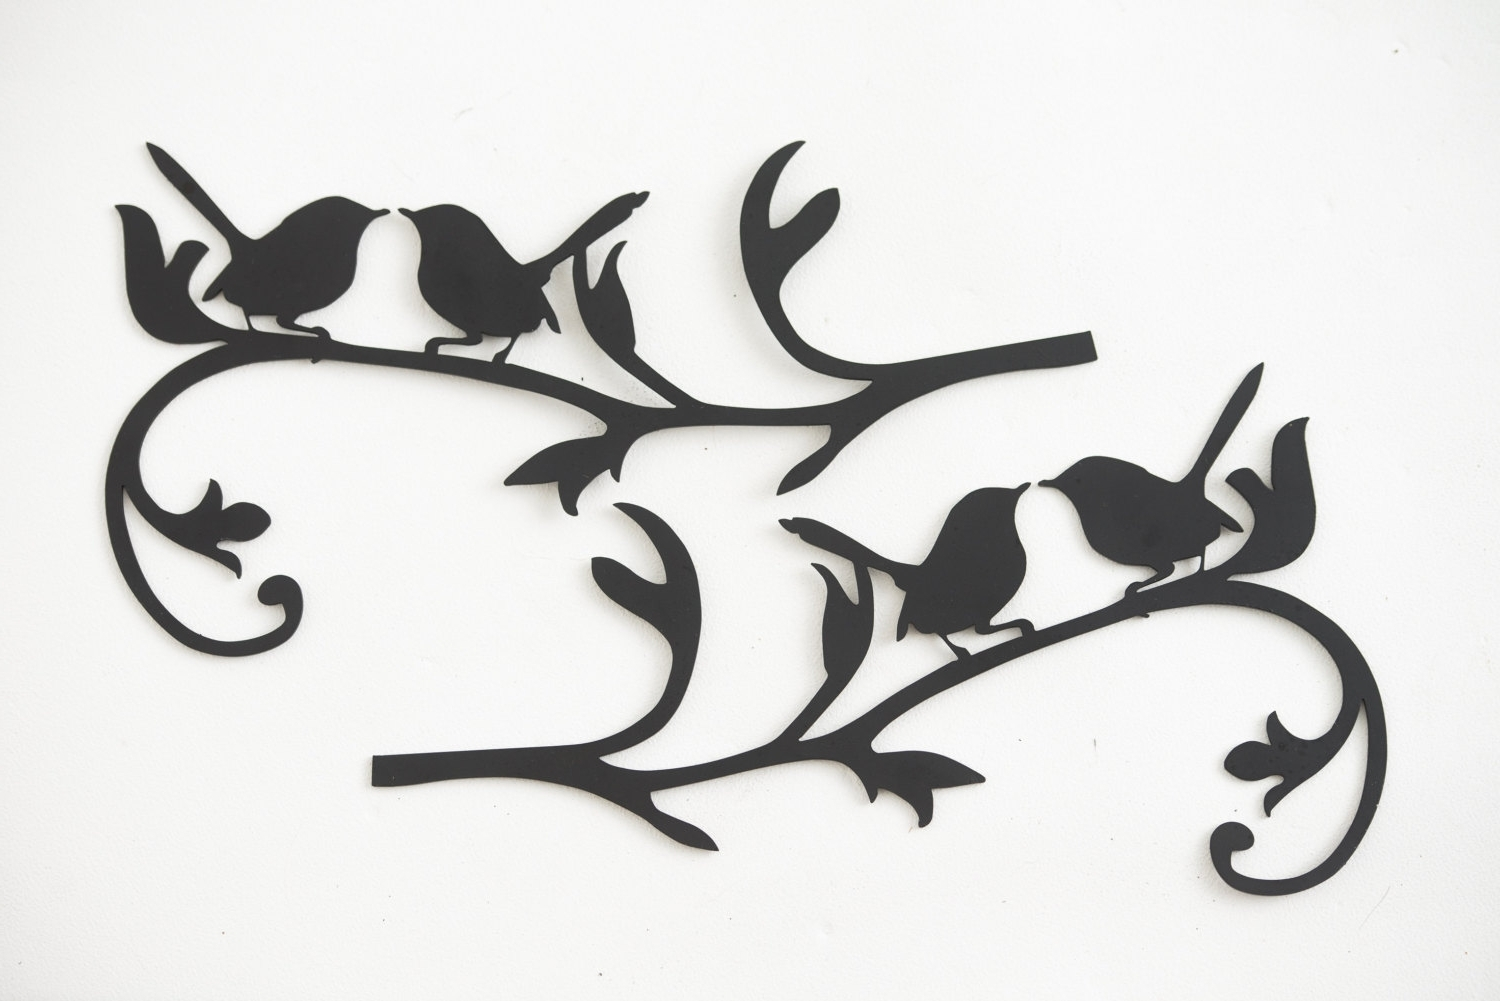 Well Known Wall Art Designs: Metal Bird Wall Art Hand Drawn And Laser Cut Intended For Metal Wall Art Birds In Flight (View 13 of 15)